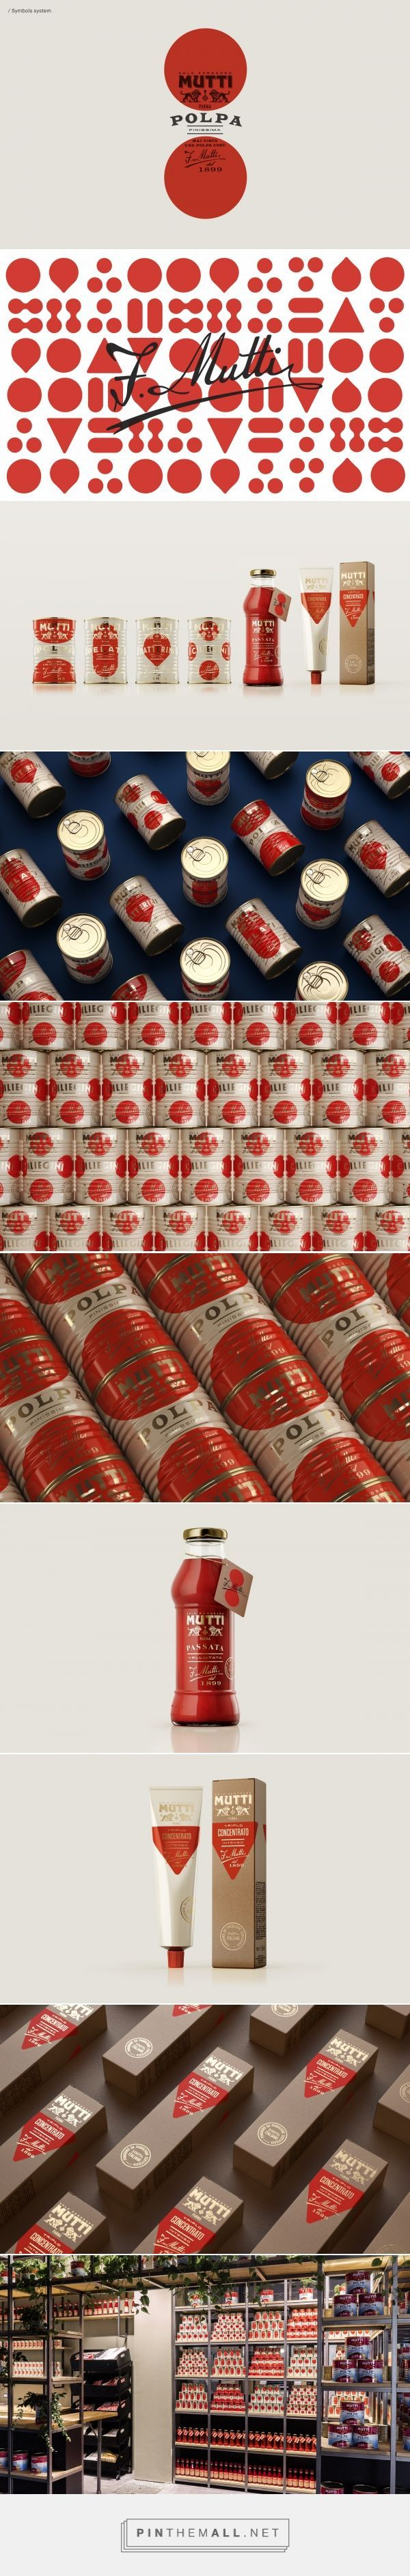 Mutti Limited Edition Tomato Product Packaging by Auge Design | Fivestar Branding Agency – Design and Branding Agency & Curated Inspiration Gallery #packaging #packagingdesign #packaginginspiration #design #designinspiration #foodpackaging